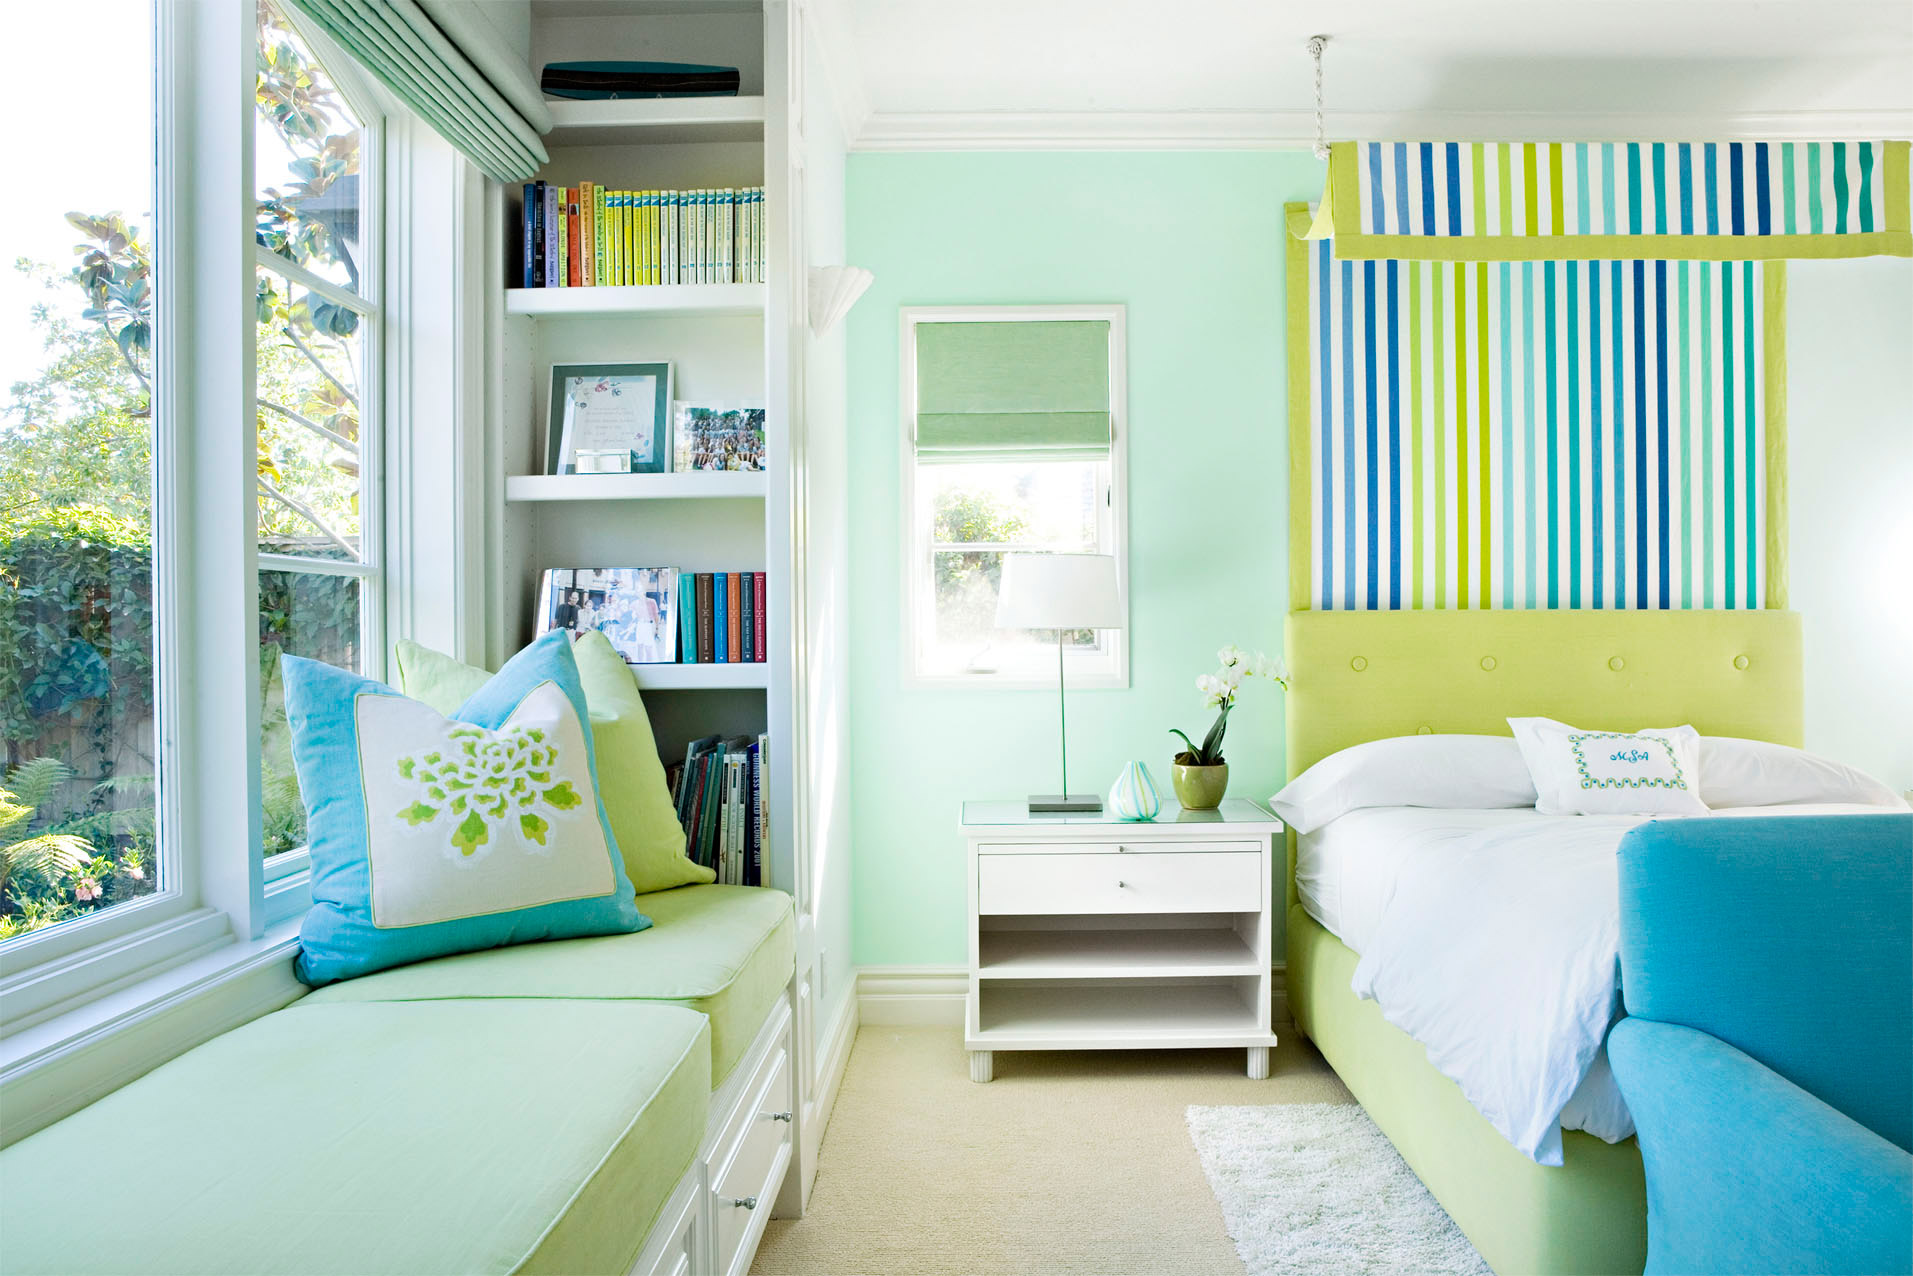 30 Best Bedroom Colors - Paint Color Ideas for Bedrooms ...